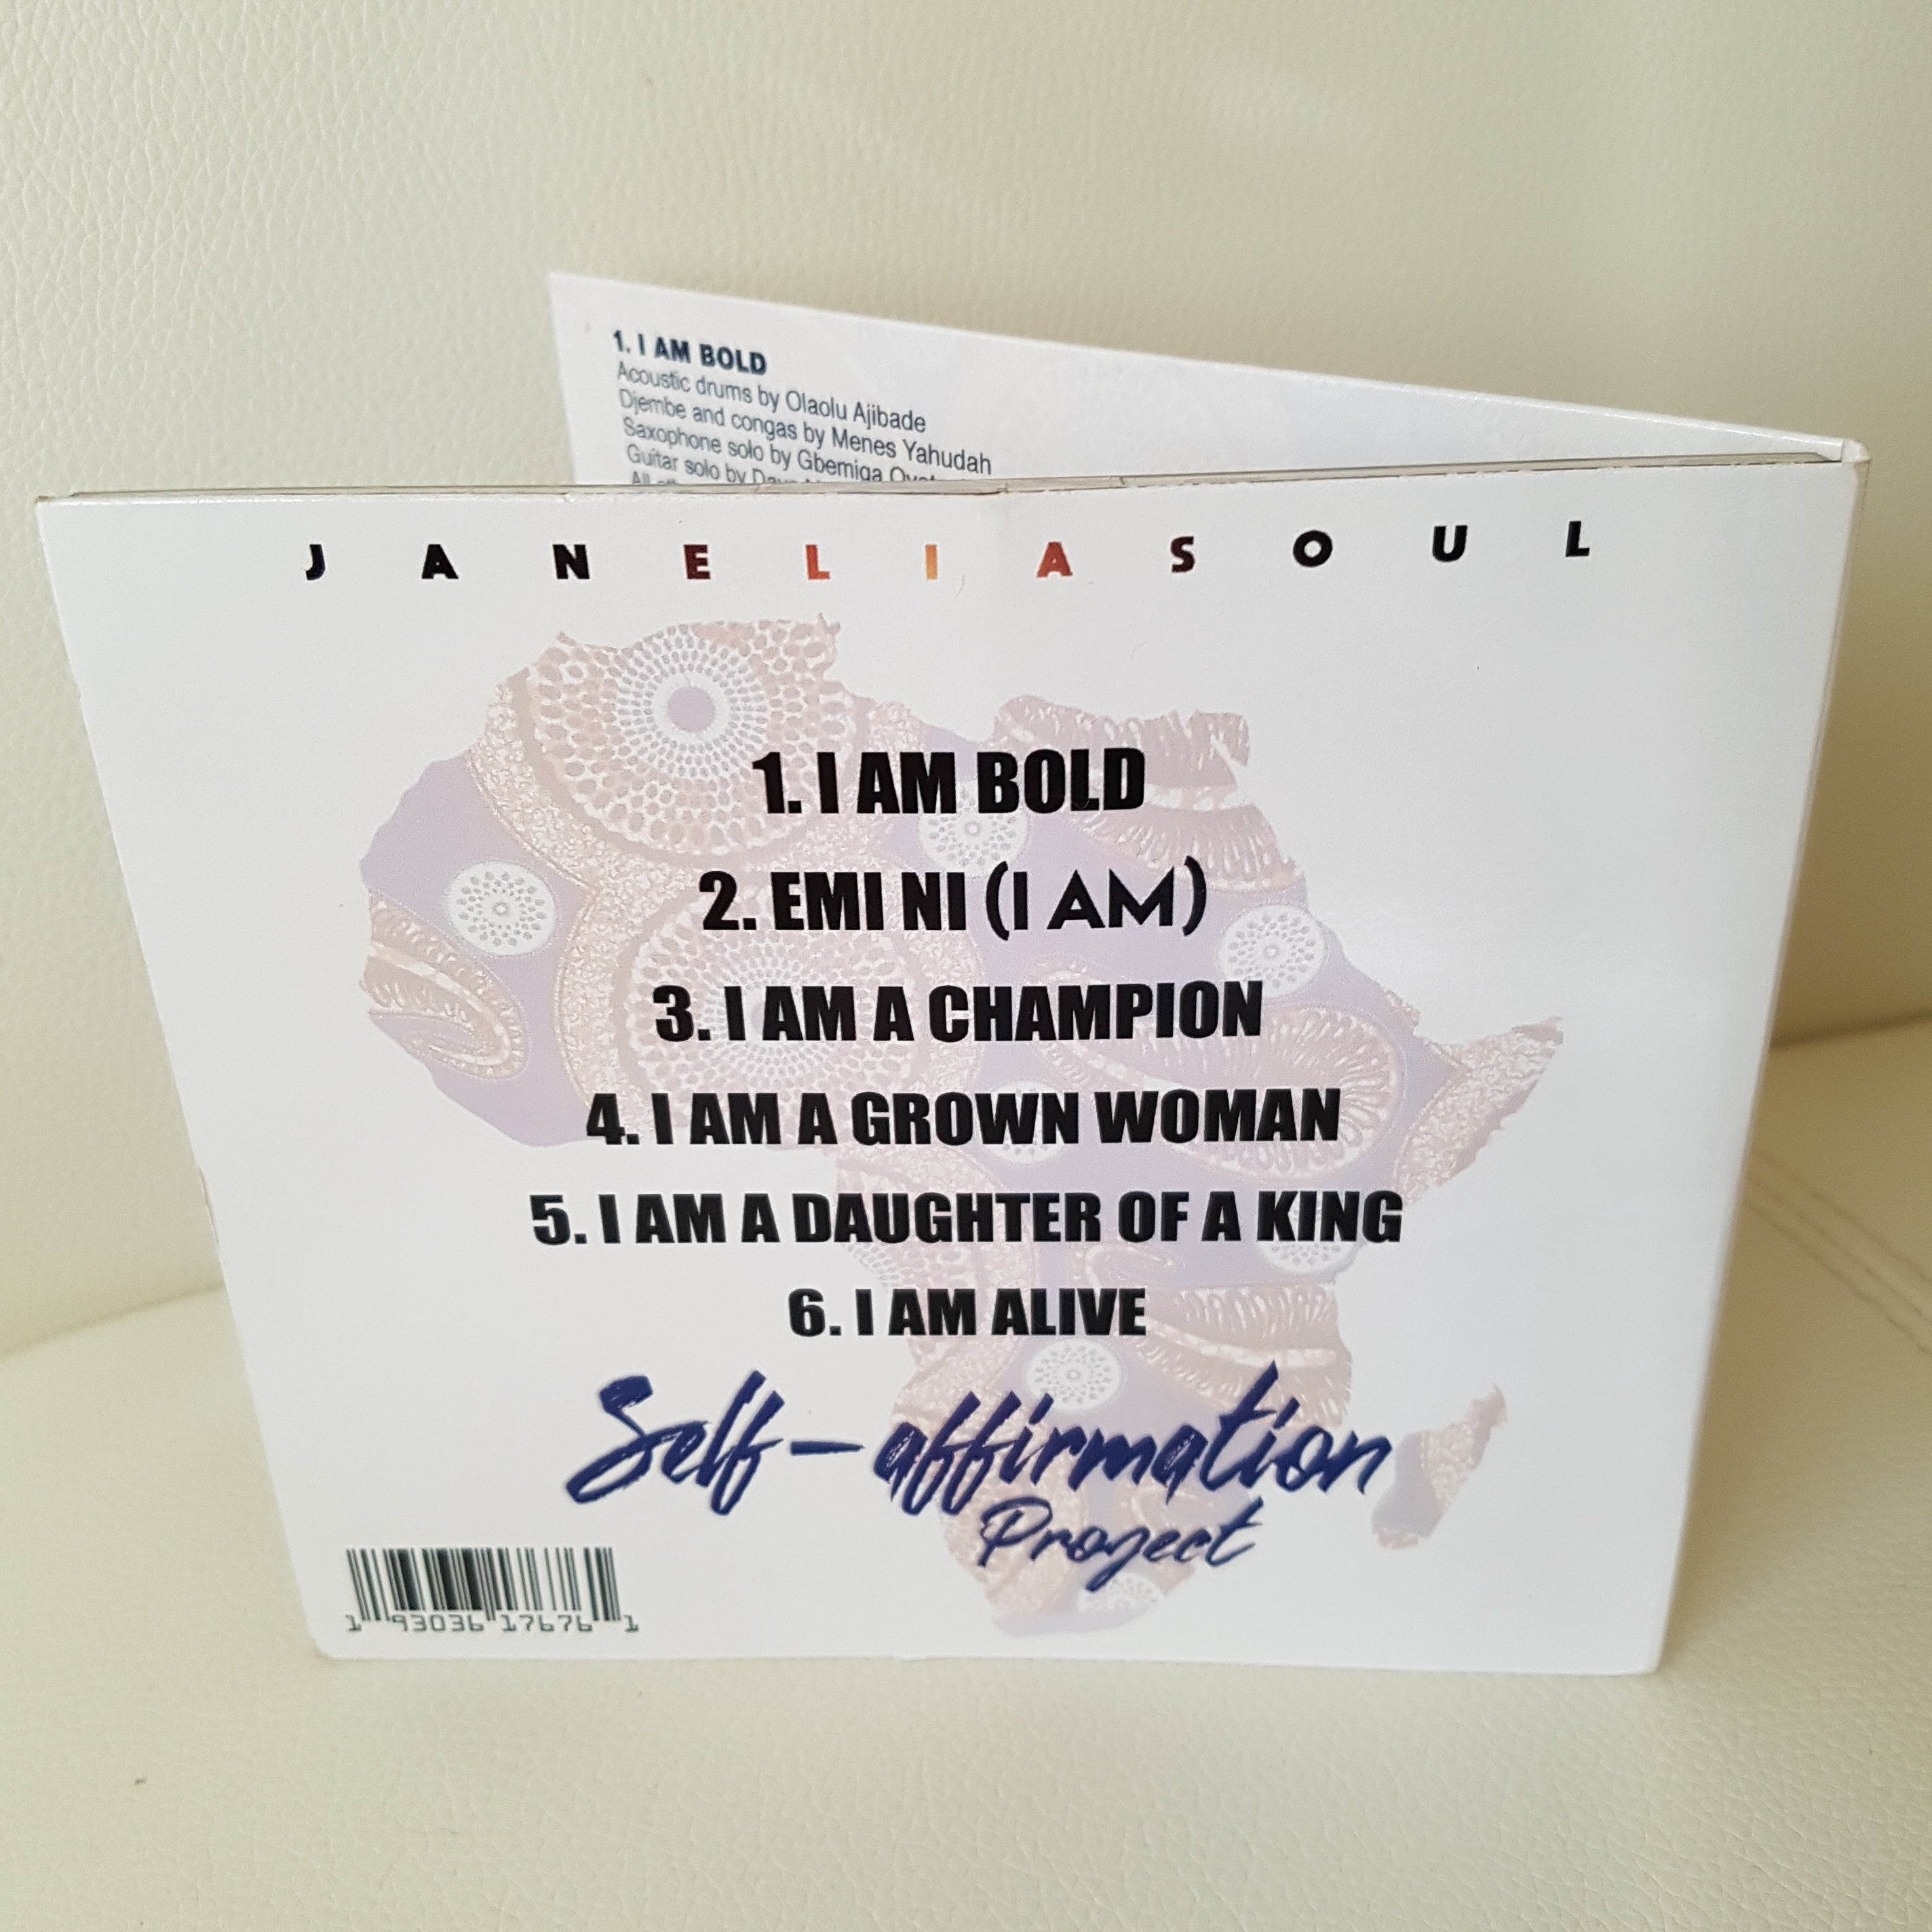 Self-affirmation Project, MP3 Or Autographed CD